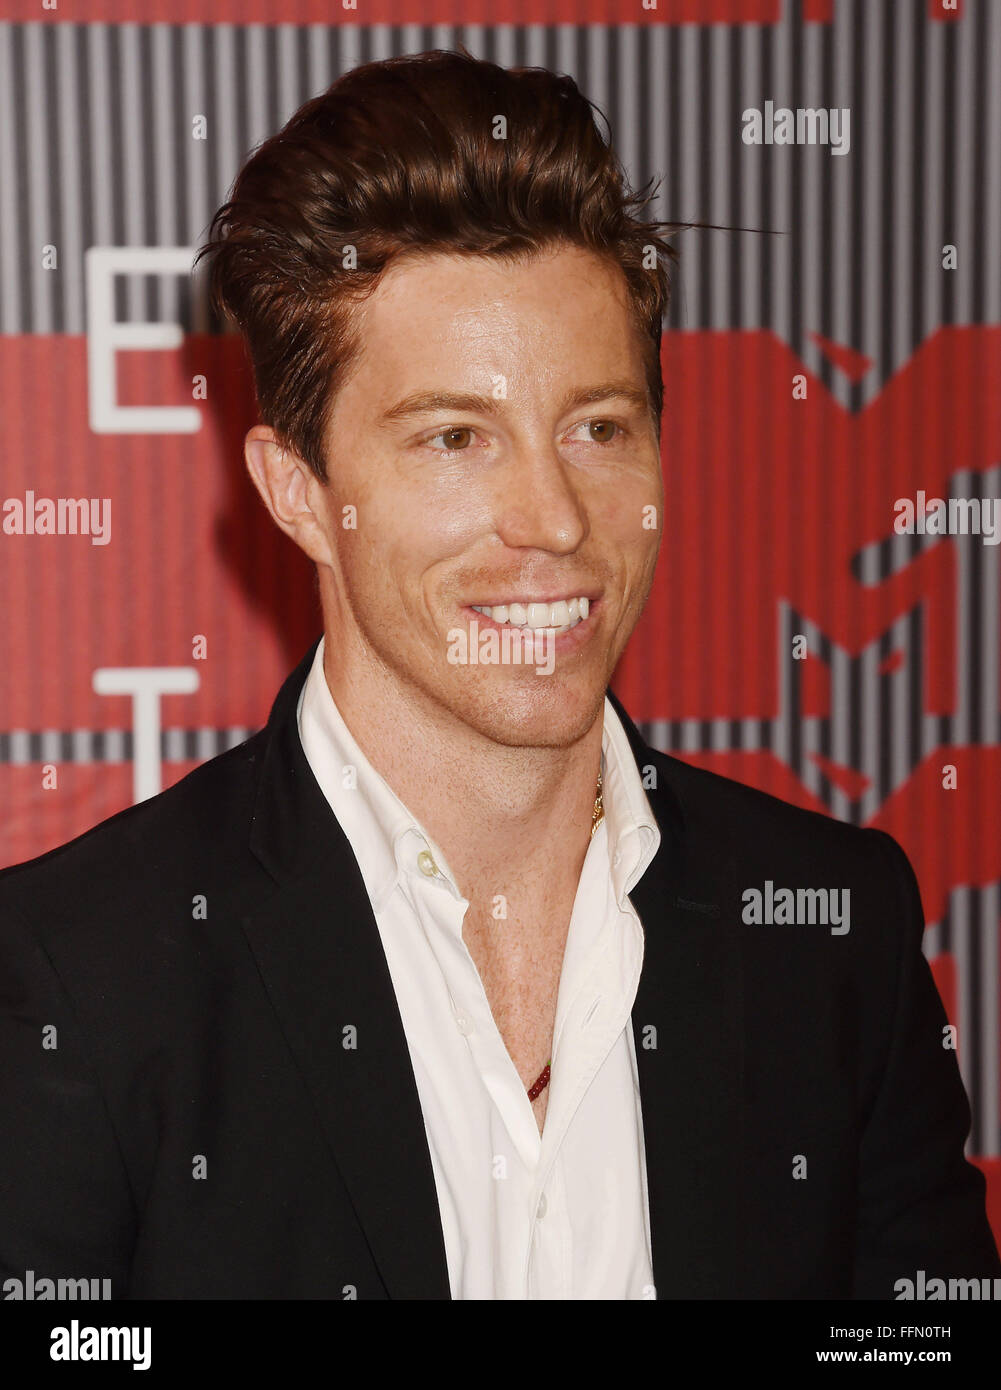 Professional snowboarder Shaun White arrives at the 2015 MTV Video Music Awards at Microsoft Theater on August 30, - Stock Image